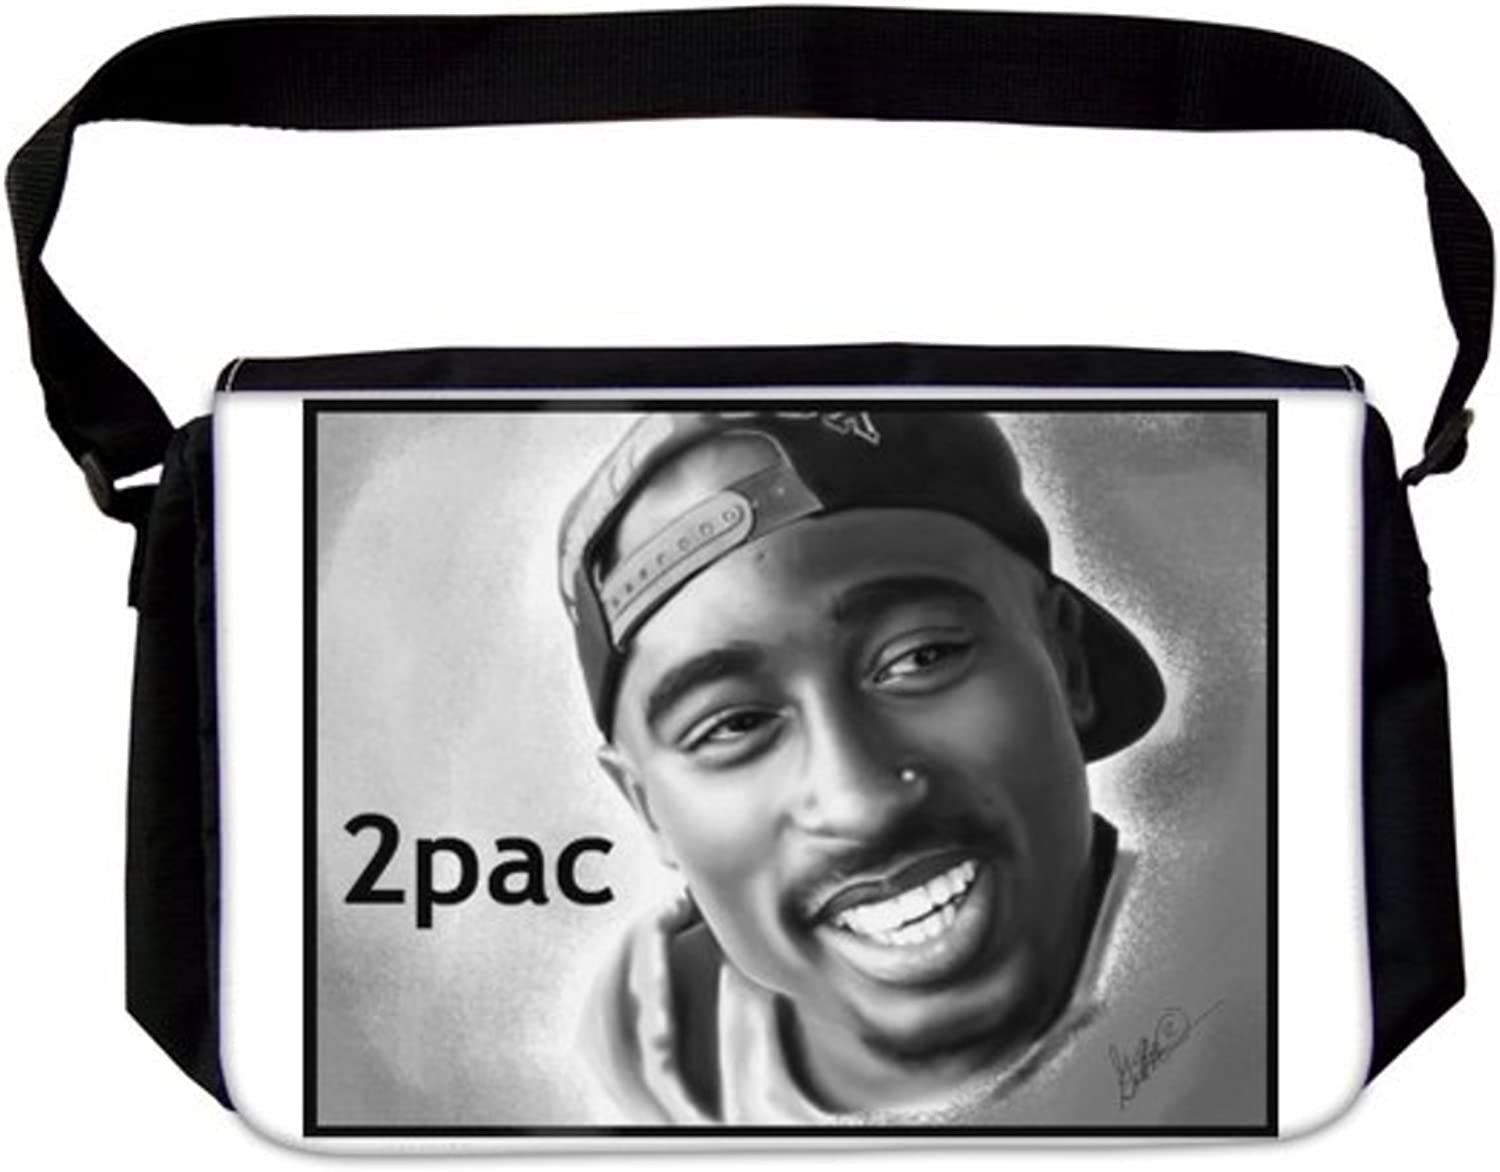 Spectacular 2Pac Tupac Shakur Smilling Happy Digital Pencil Art Drawing Artist Signed Hip Hop Rap Laptop School Bag Business Bag Casual Daypack Multiple Pockets Unisex for Men & Women